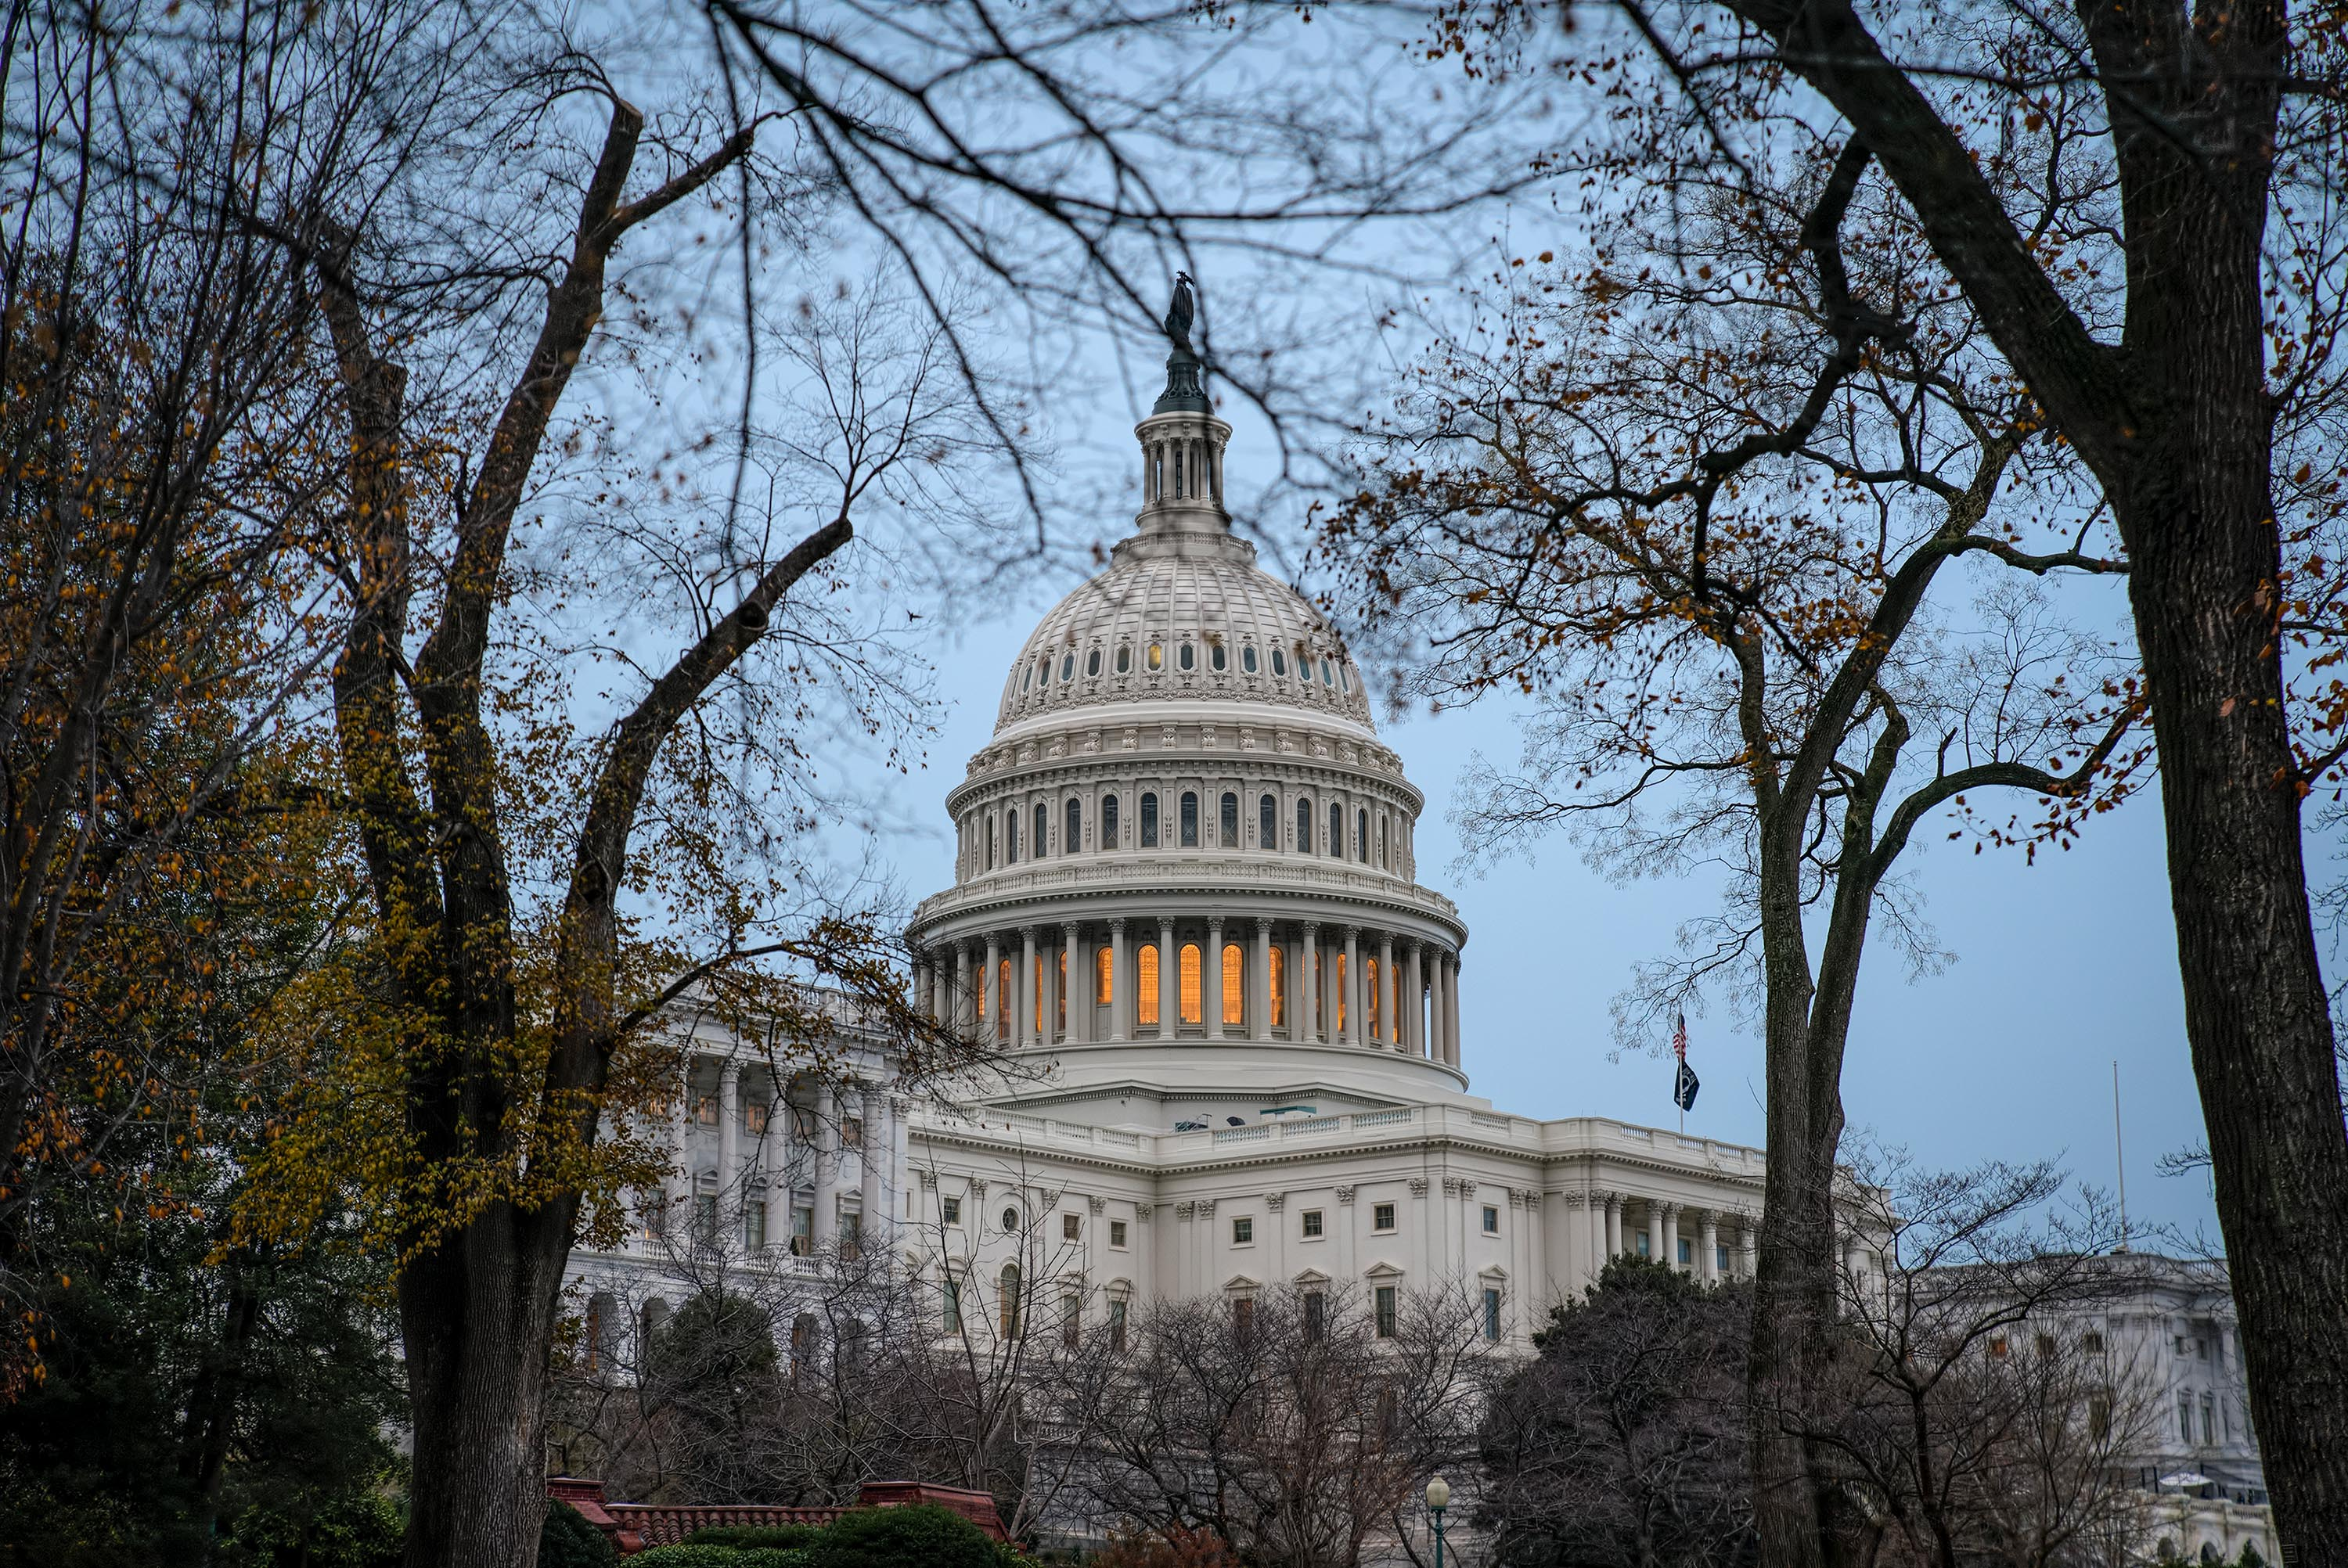 The next 24 to 48 hours are crucial to avoid a potential government shutdown